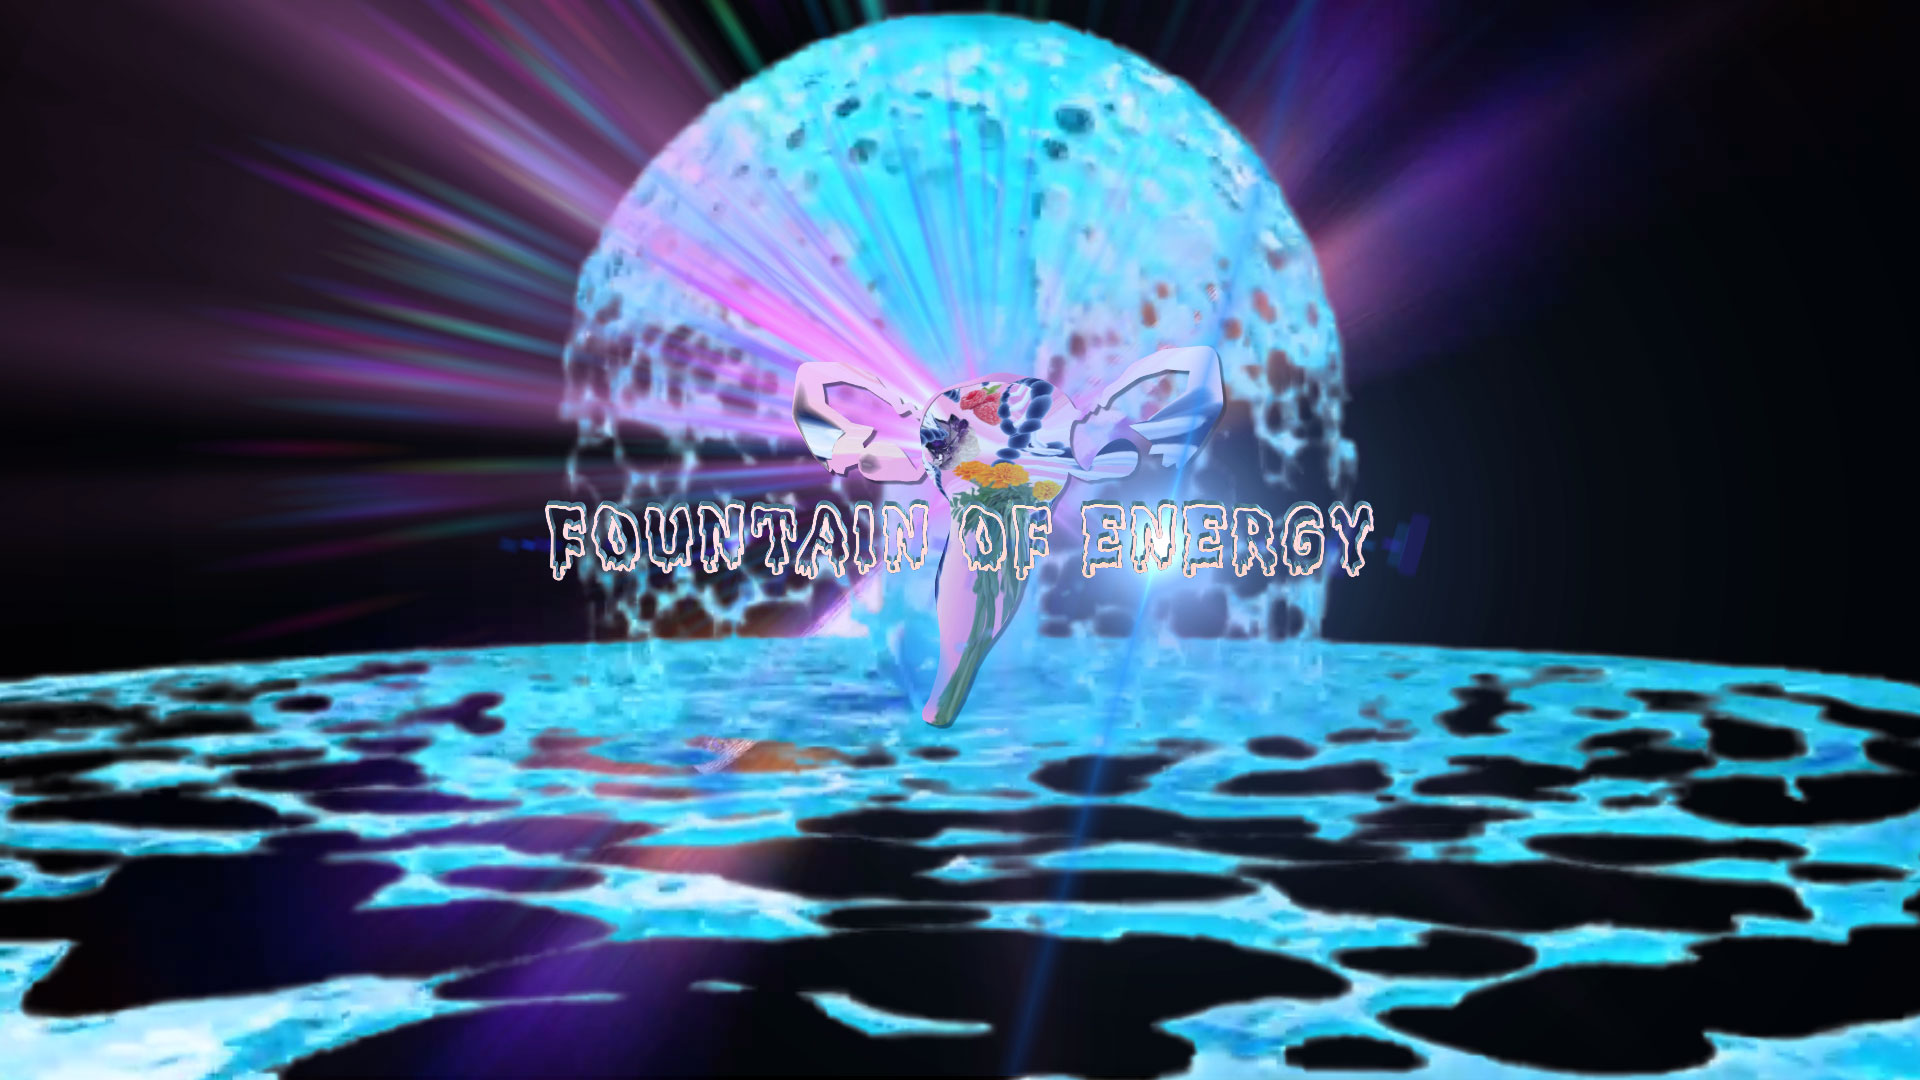 "The words ""Fountain of Energy"" are at the center of the screen in dripping font. The shape of a uterus shines in front of a planet-like dome of liquid."